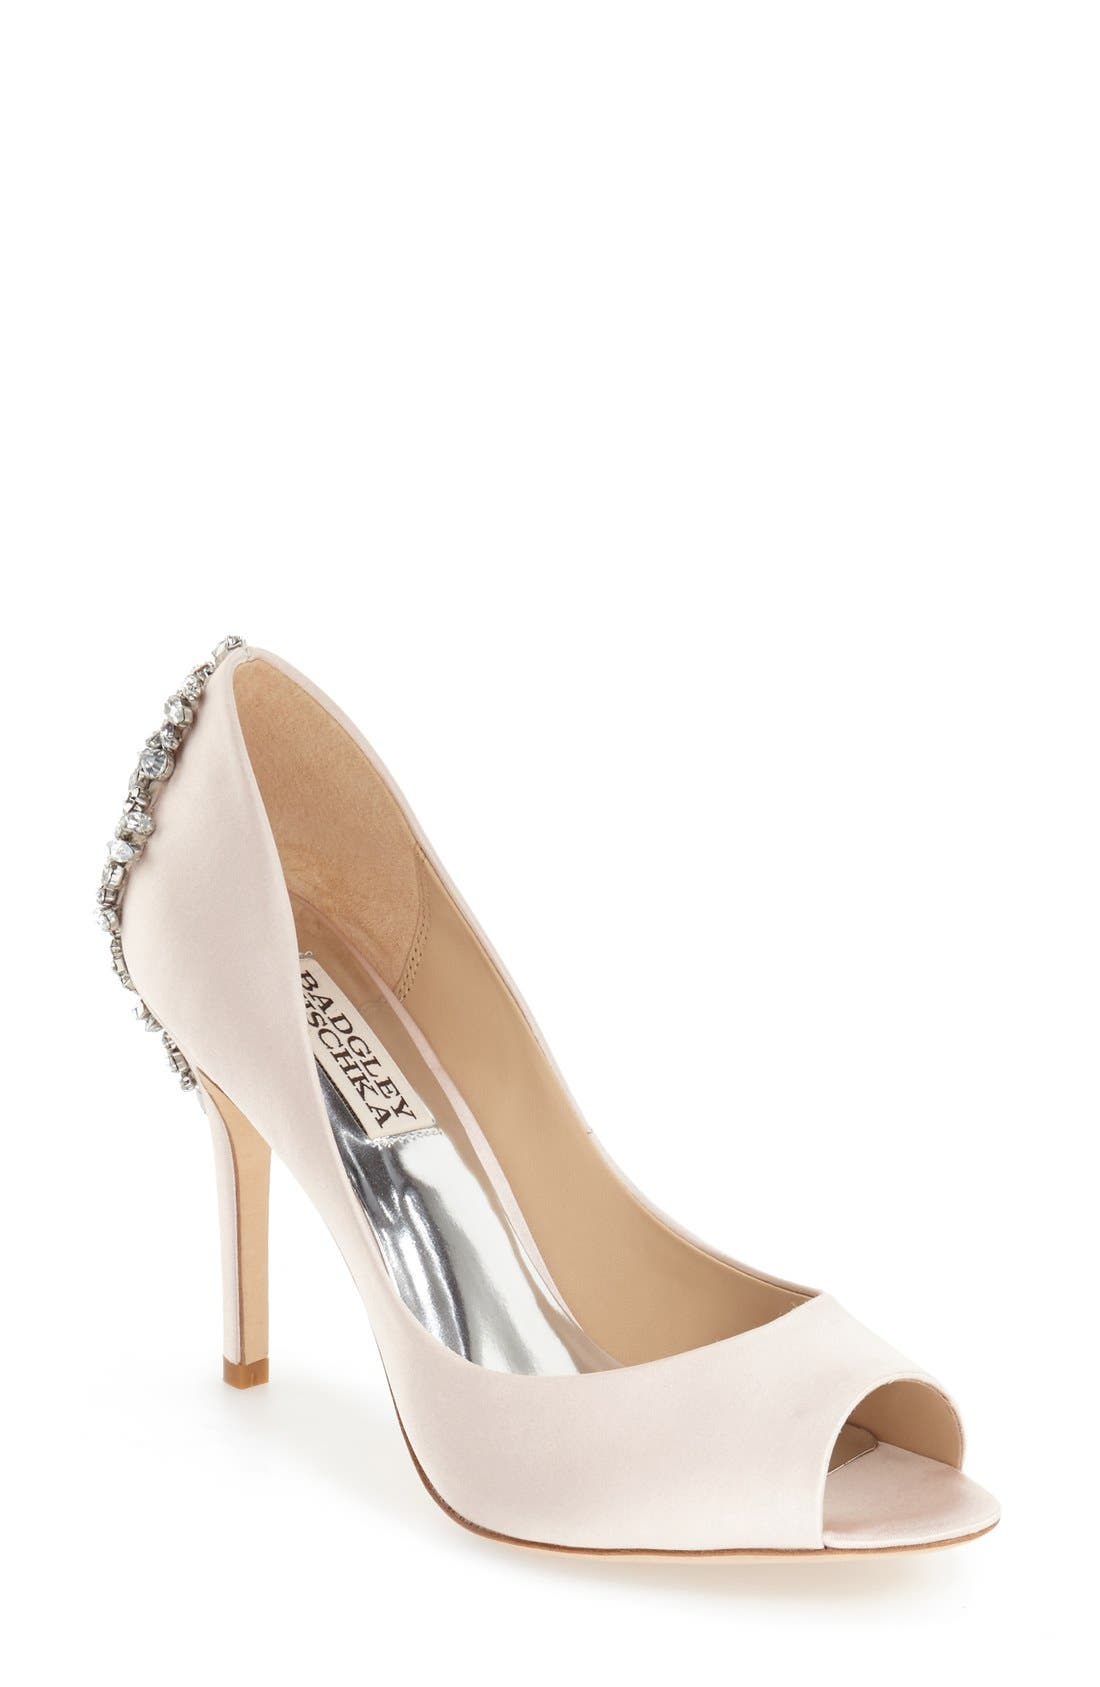 Main Image - Badgley Mischka 'Nilla' Peep Toe Pump (Women)